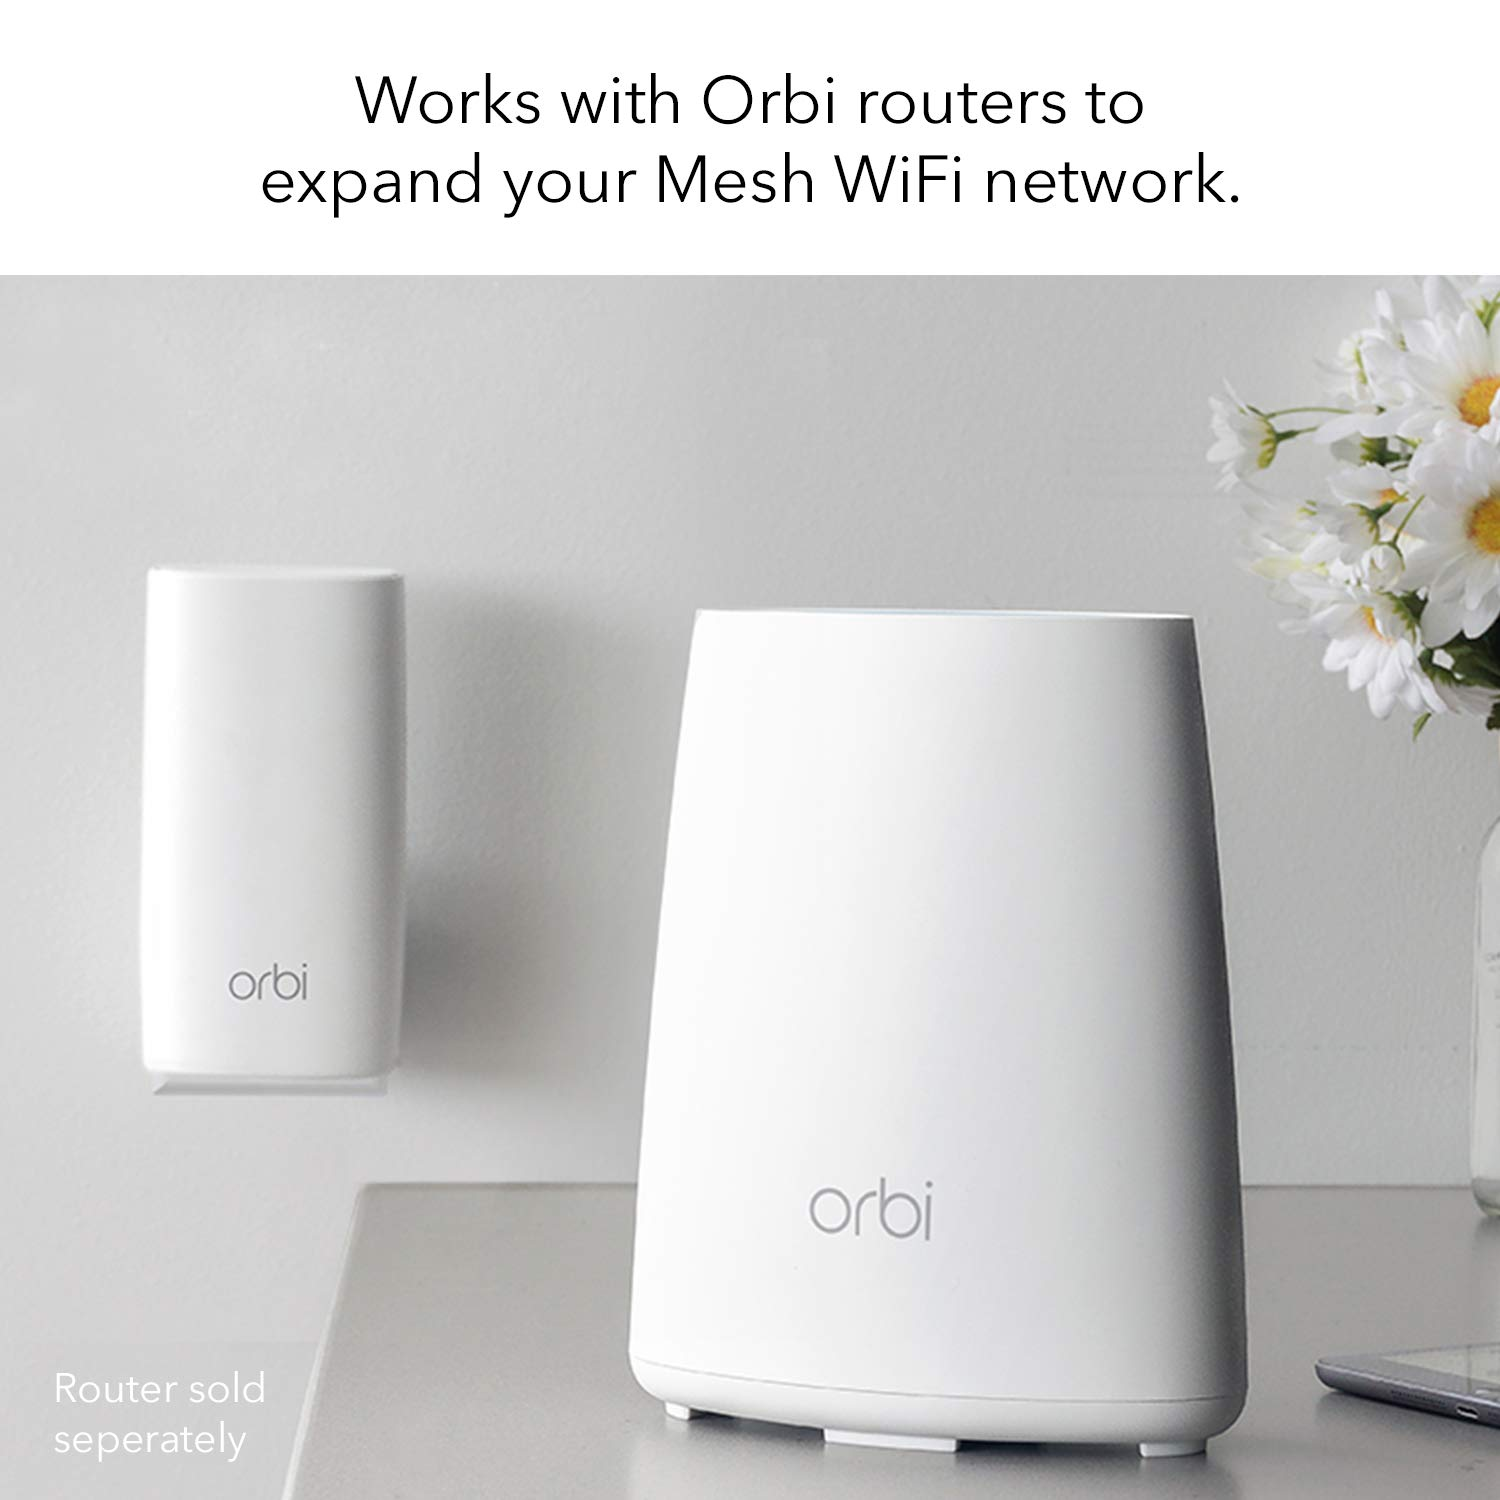 NETGEAR Orbi Wall-Plug Whole Home Mesh WiFi Satellite Extender - works with  your Orbi router to add 1,500 sq  feet of coverage at speeds up to 2 2